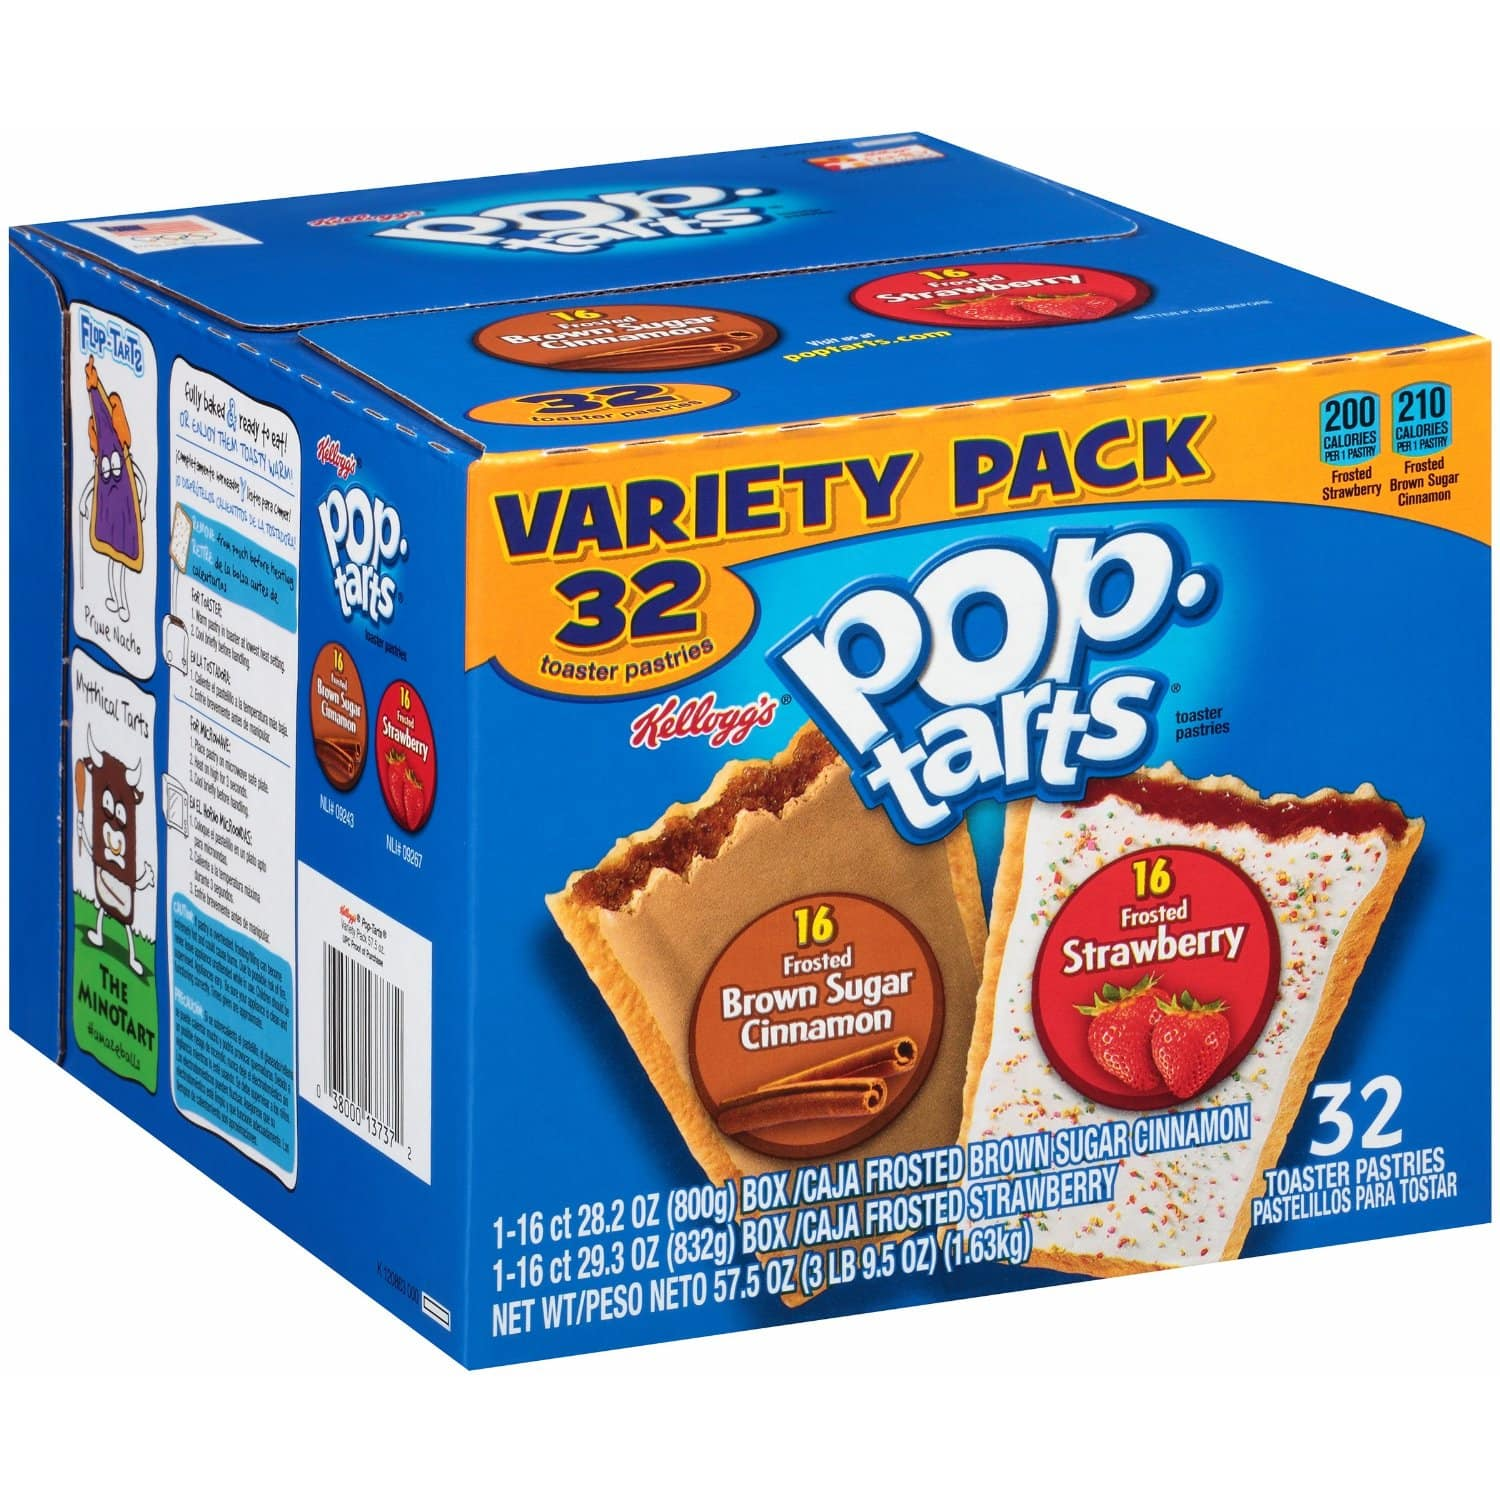 32 Count-Pop-Tarts, Variety Frosted Strawberry and Frosted Brown Sugar Cinnamon After Coupon $4.20 + S&S + FS @Amazon